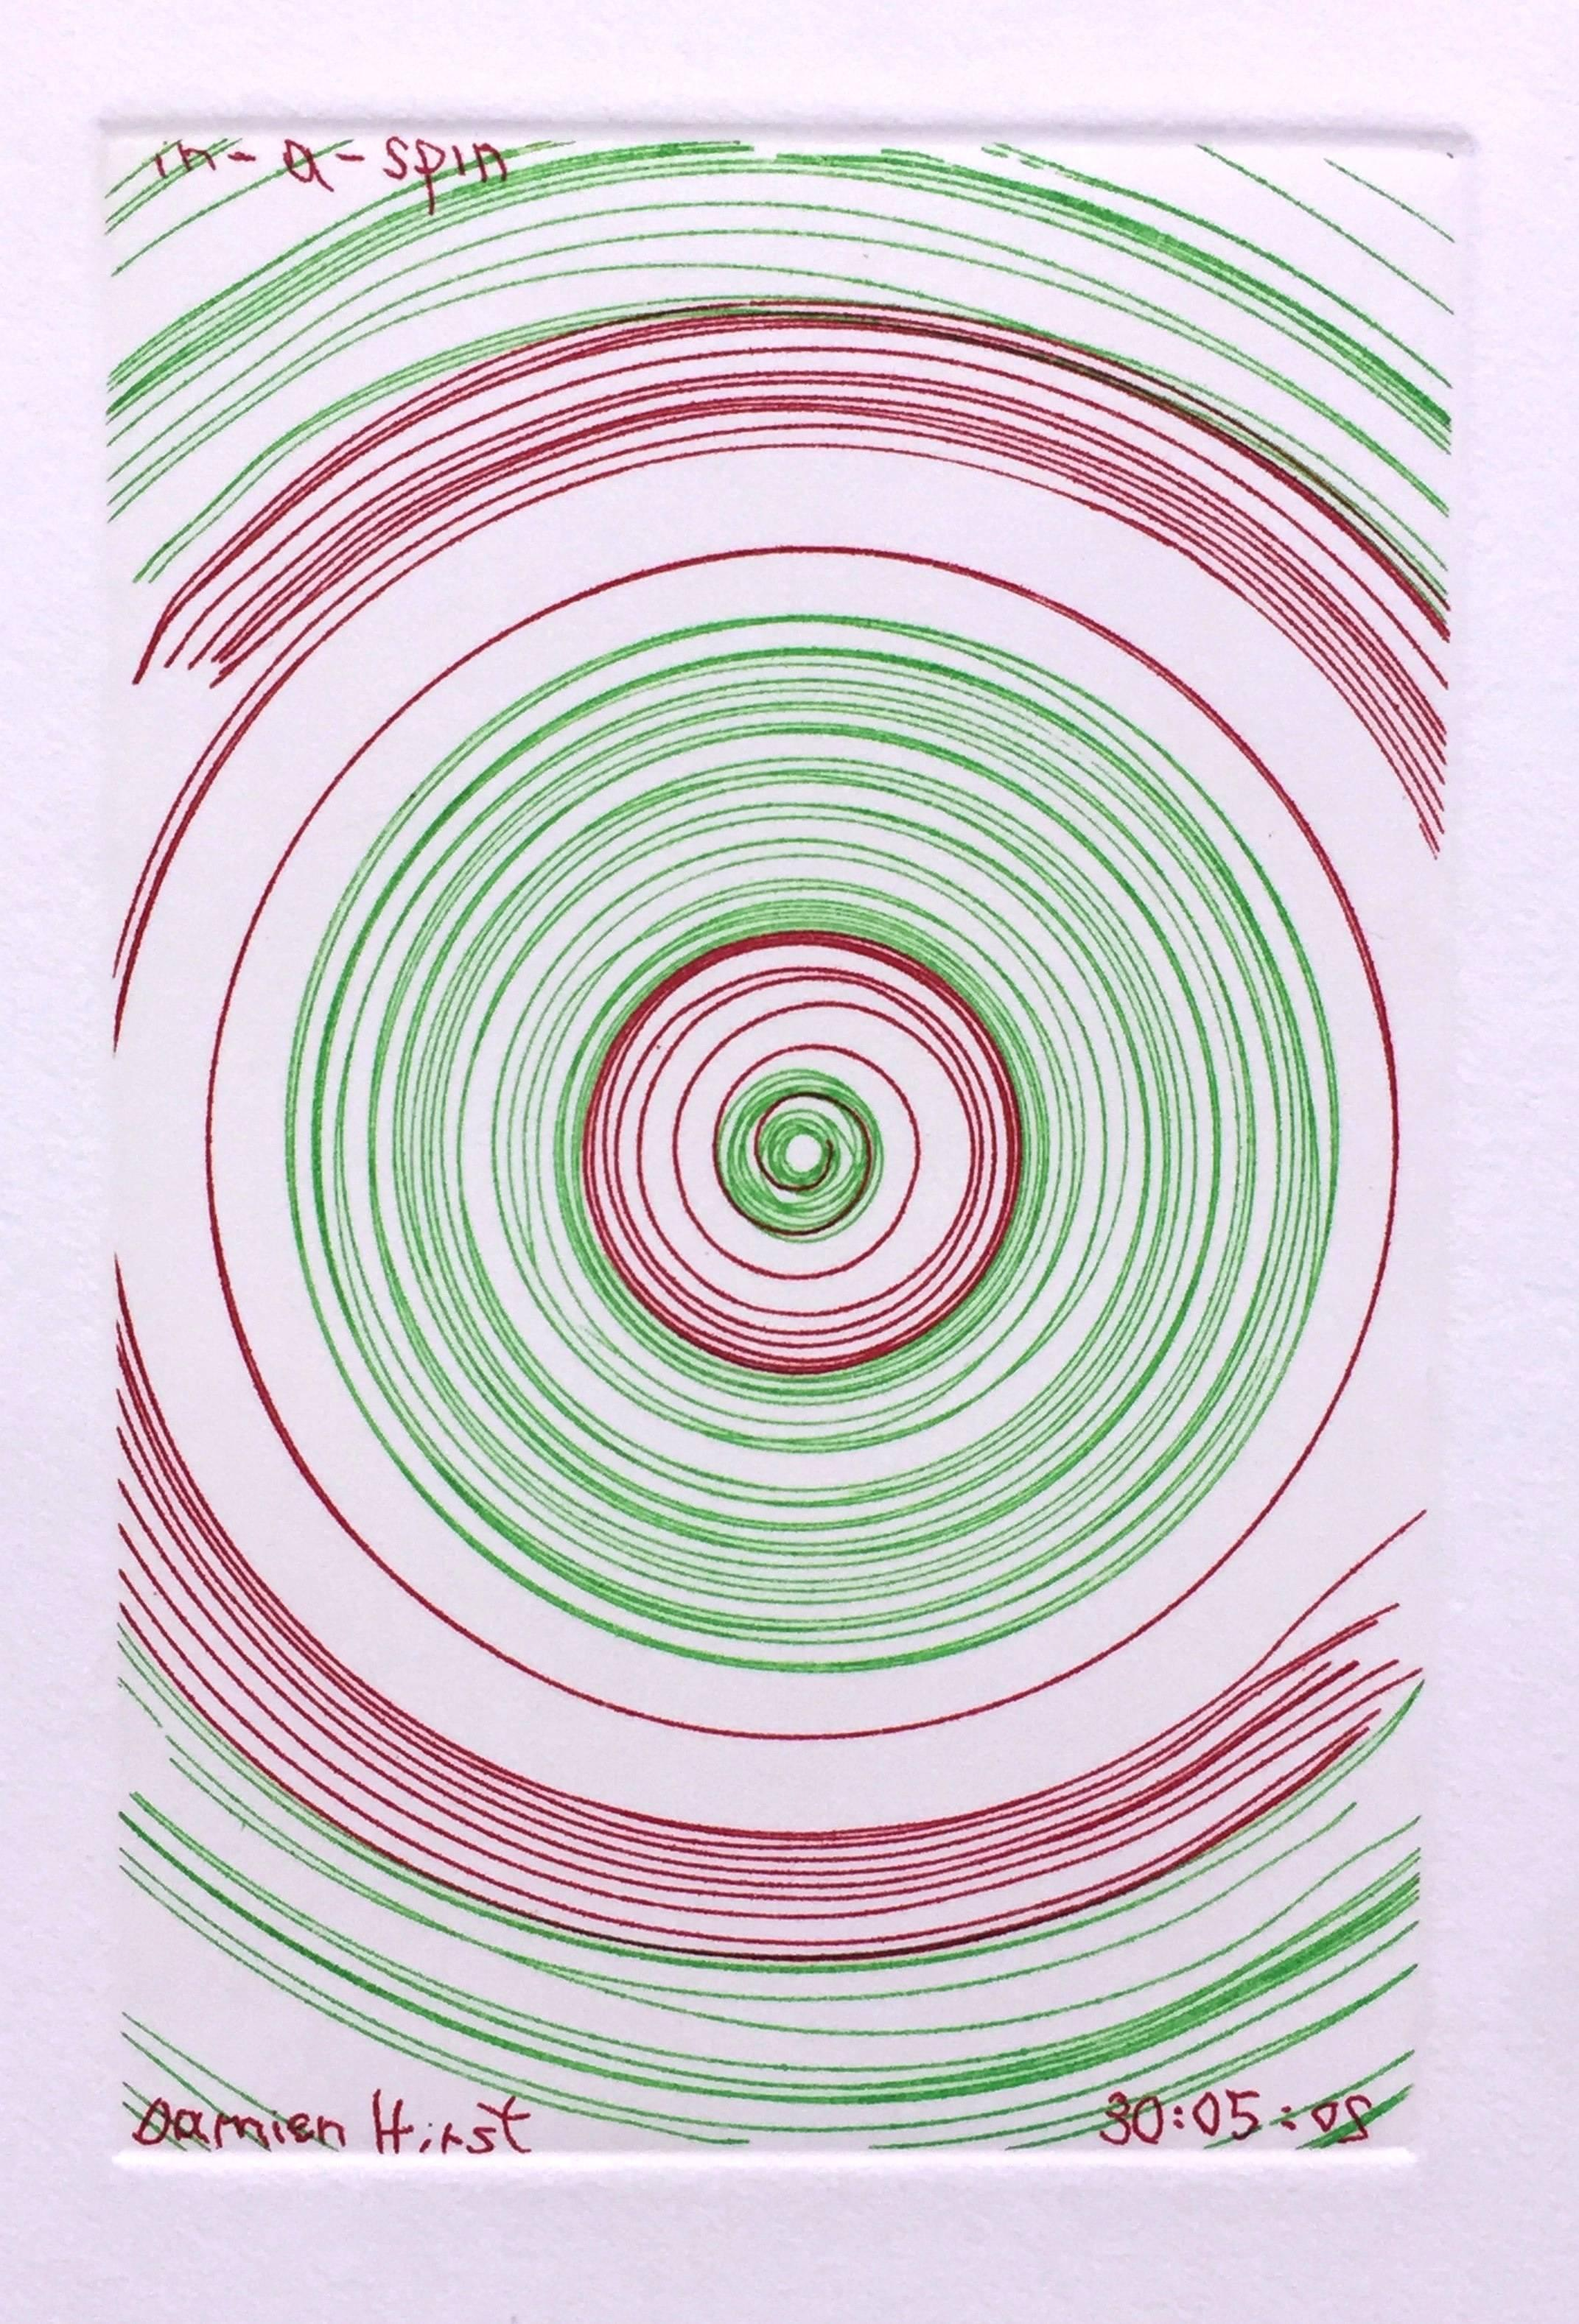 In A Spin, from In A Spin Series